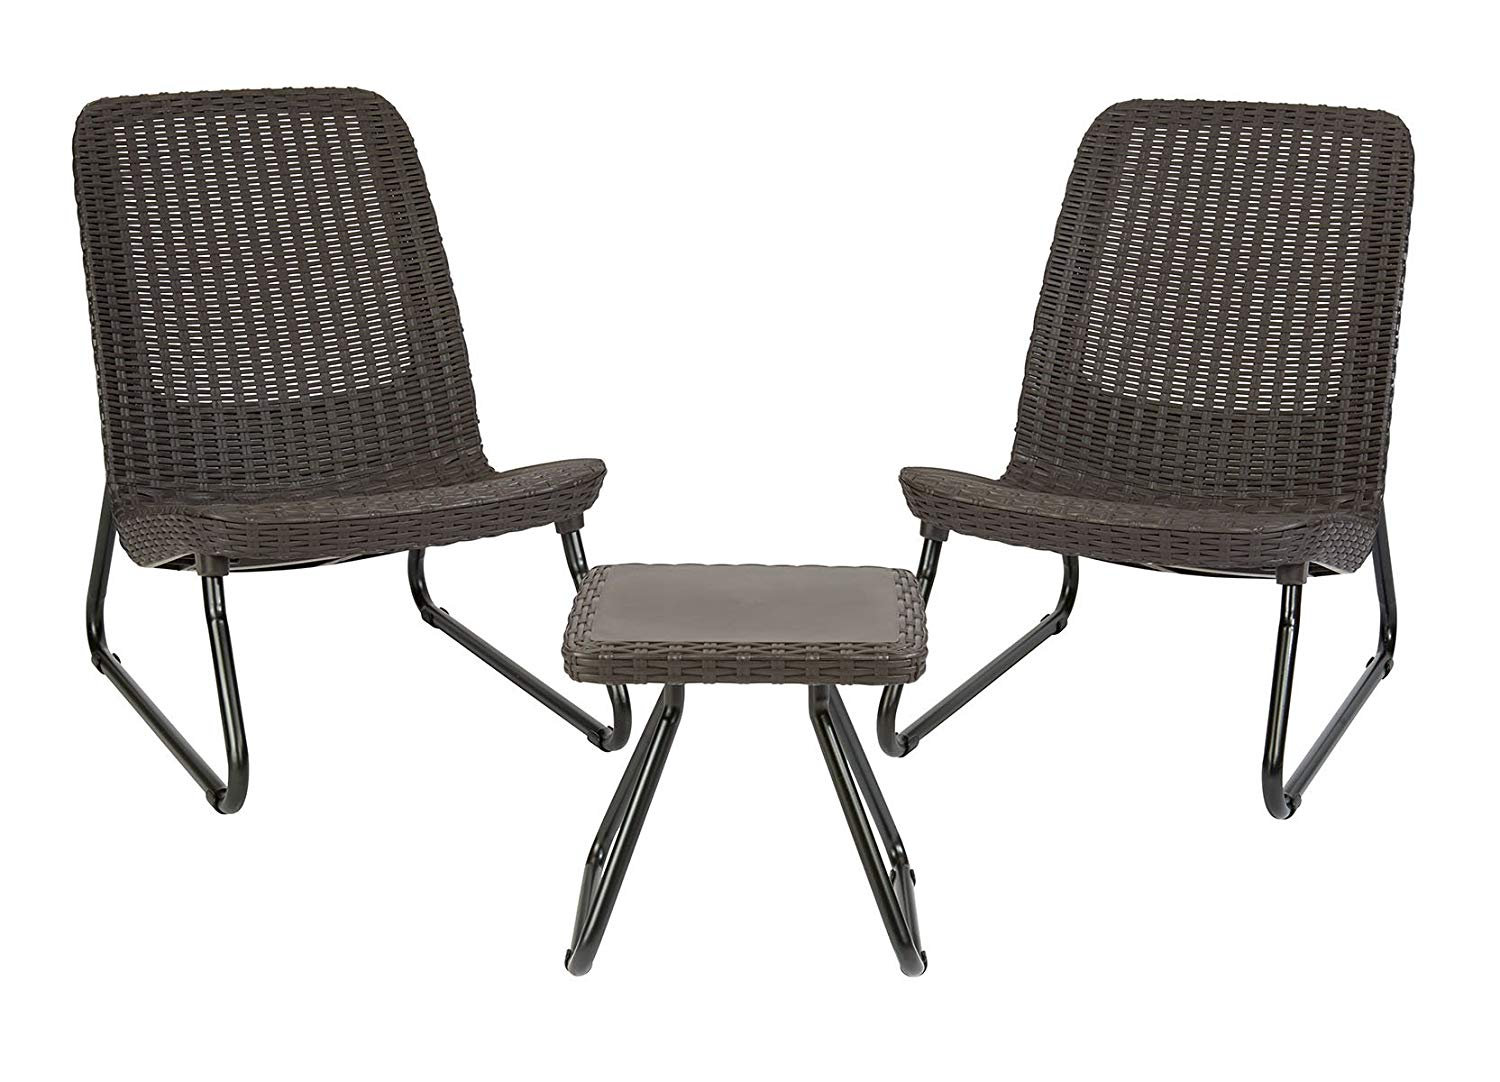 3 Piece All Weather Patio Chair Amp Table Set